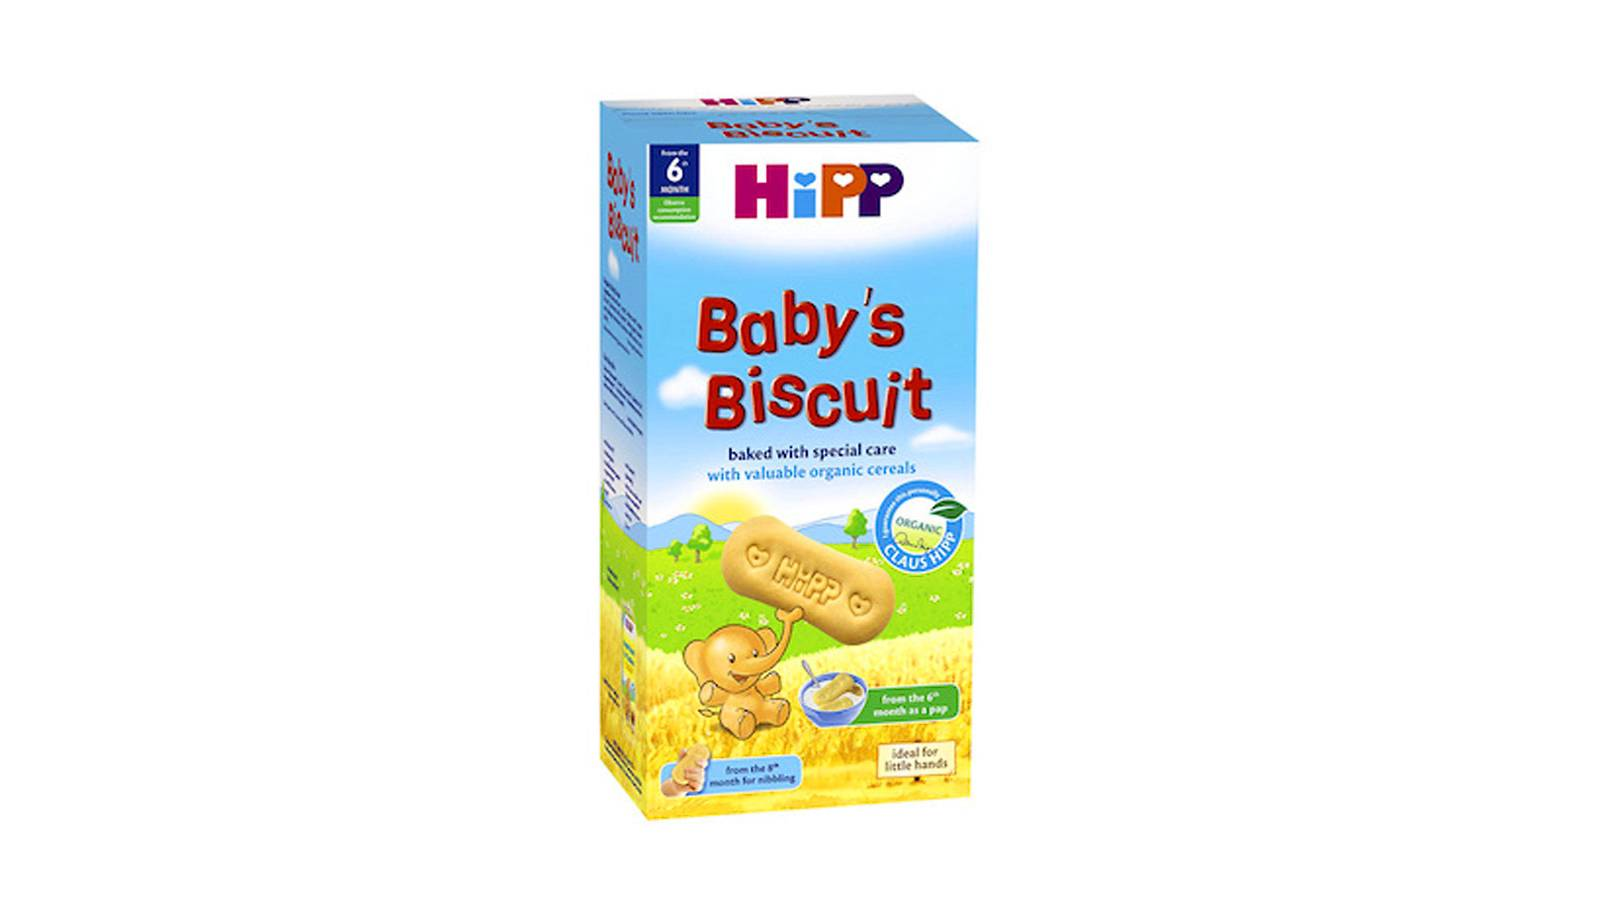 BUYER'S-GUIDE-8-Best-baby-snacks-HiPP